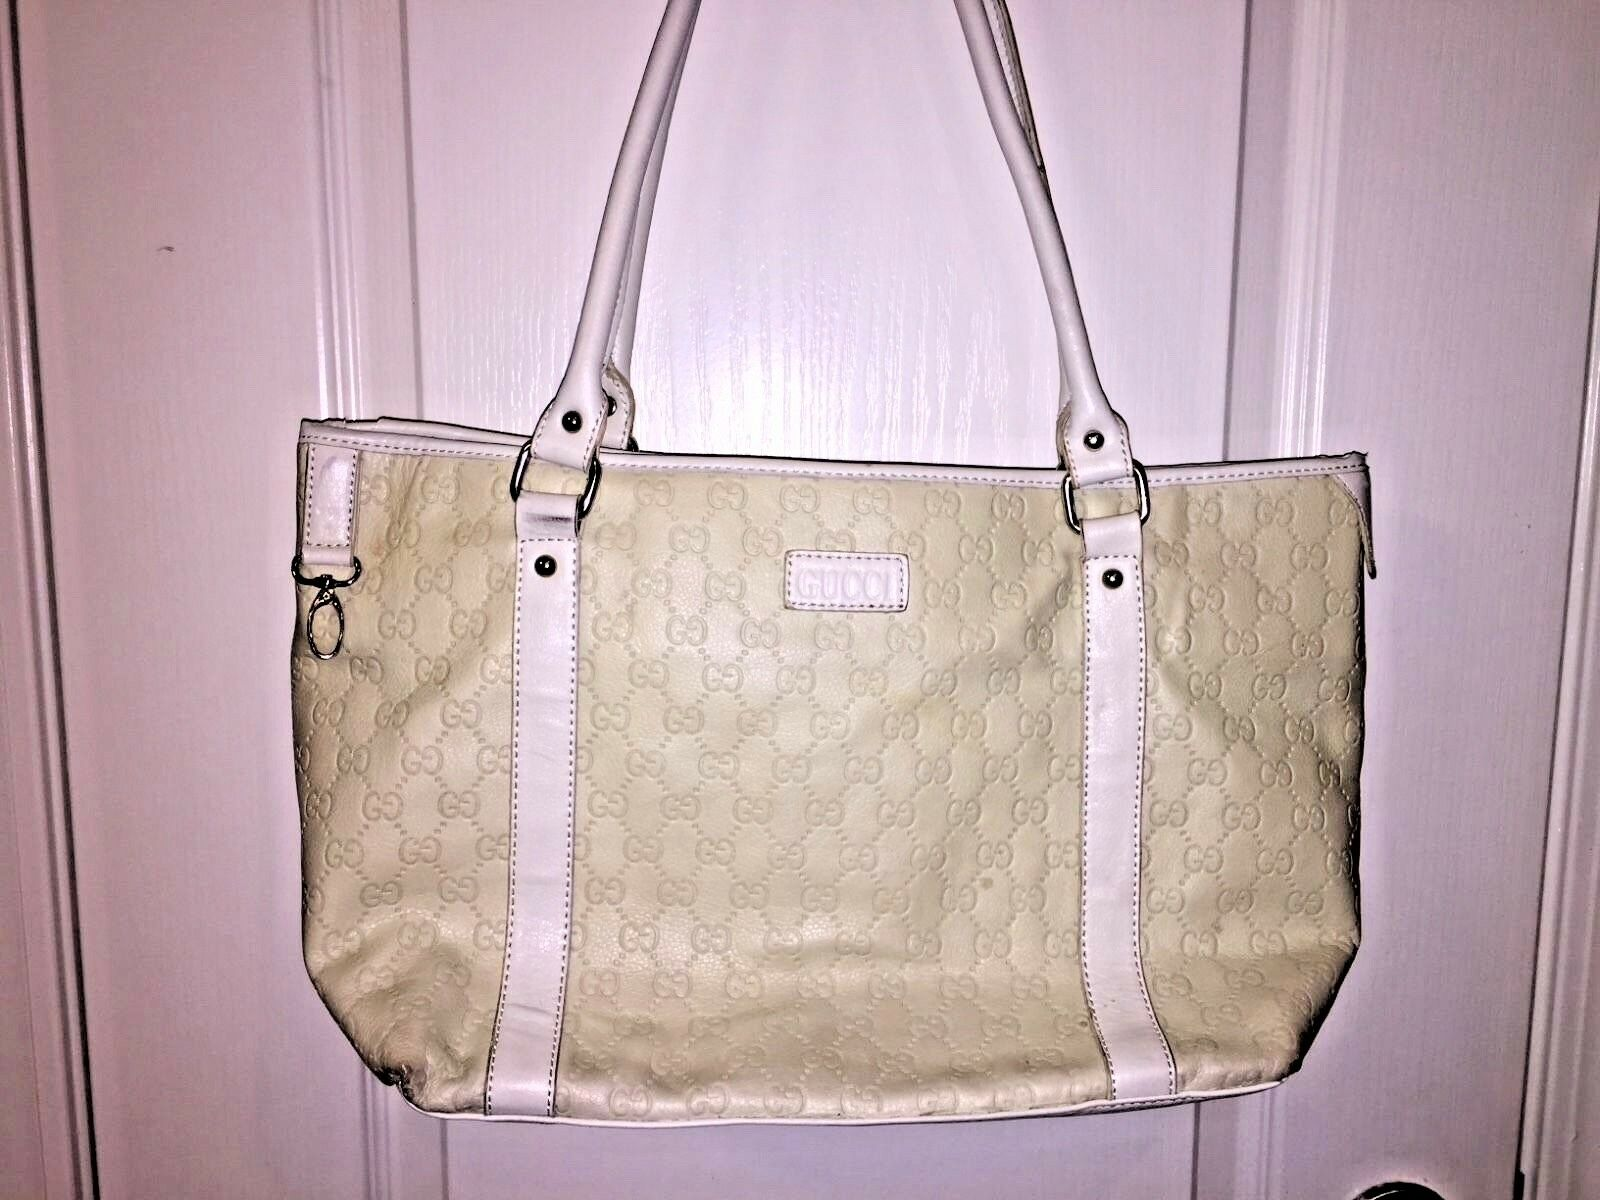 GUCCI GUCCISIMA LRG.OFF-WHITE/BEIGE LEATHER GG LOGO TOTE SHOULDERBAG MSRP $1,825